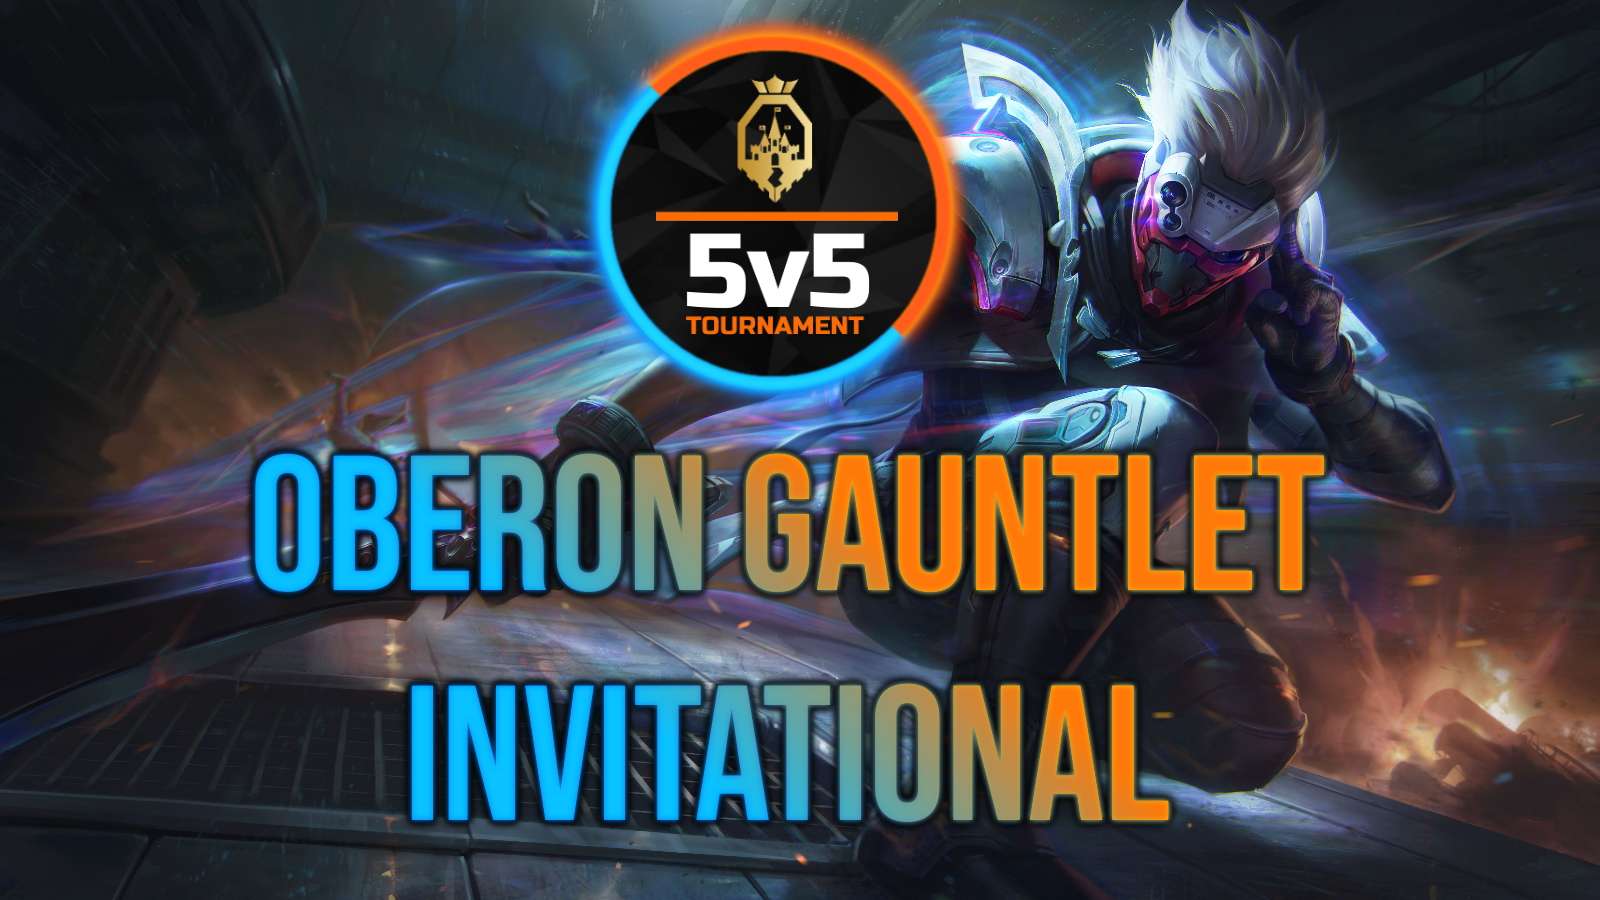 Oberon Gauntlet Invitational (27 March)